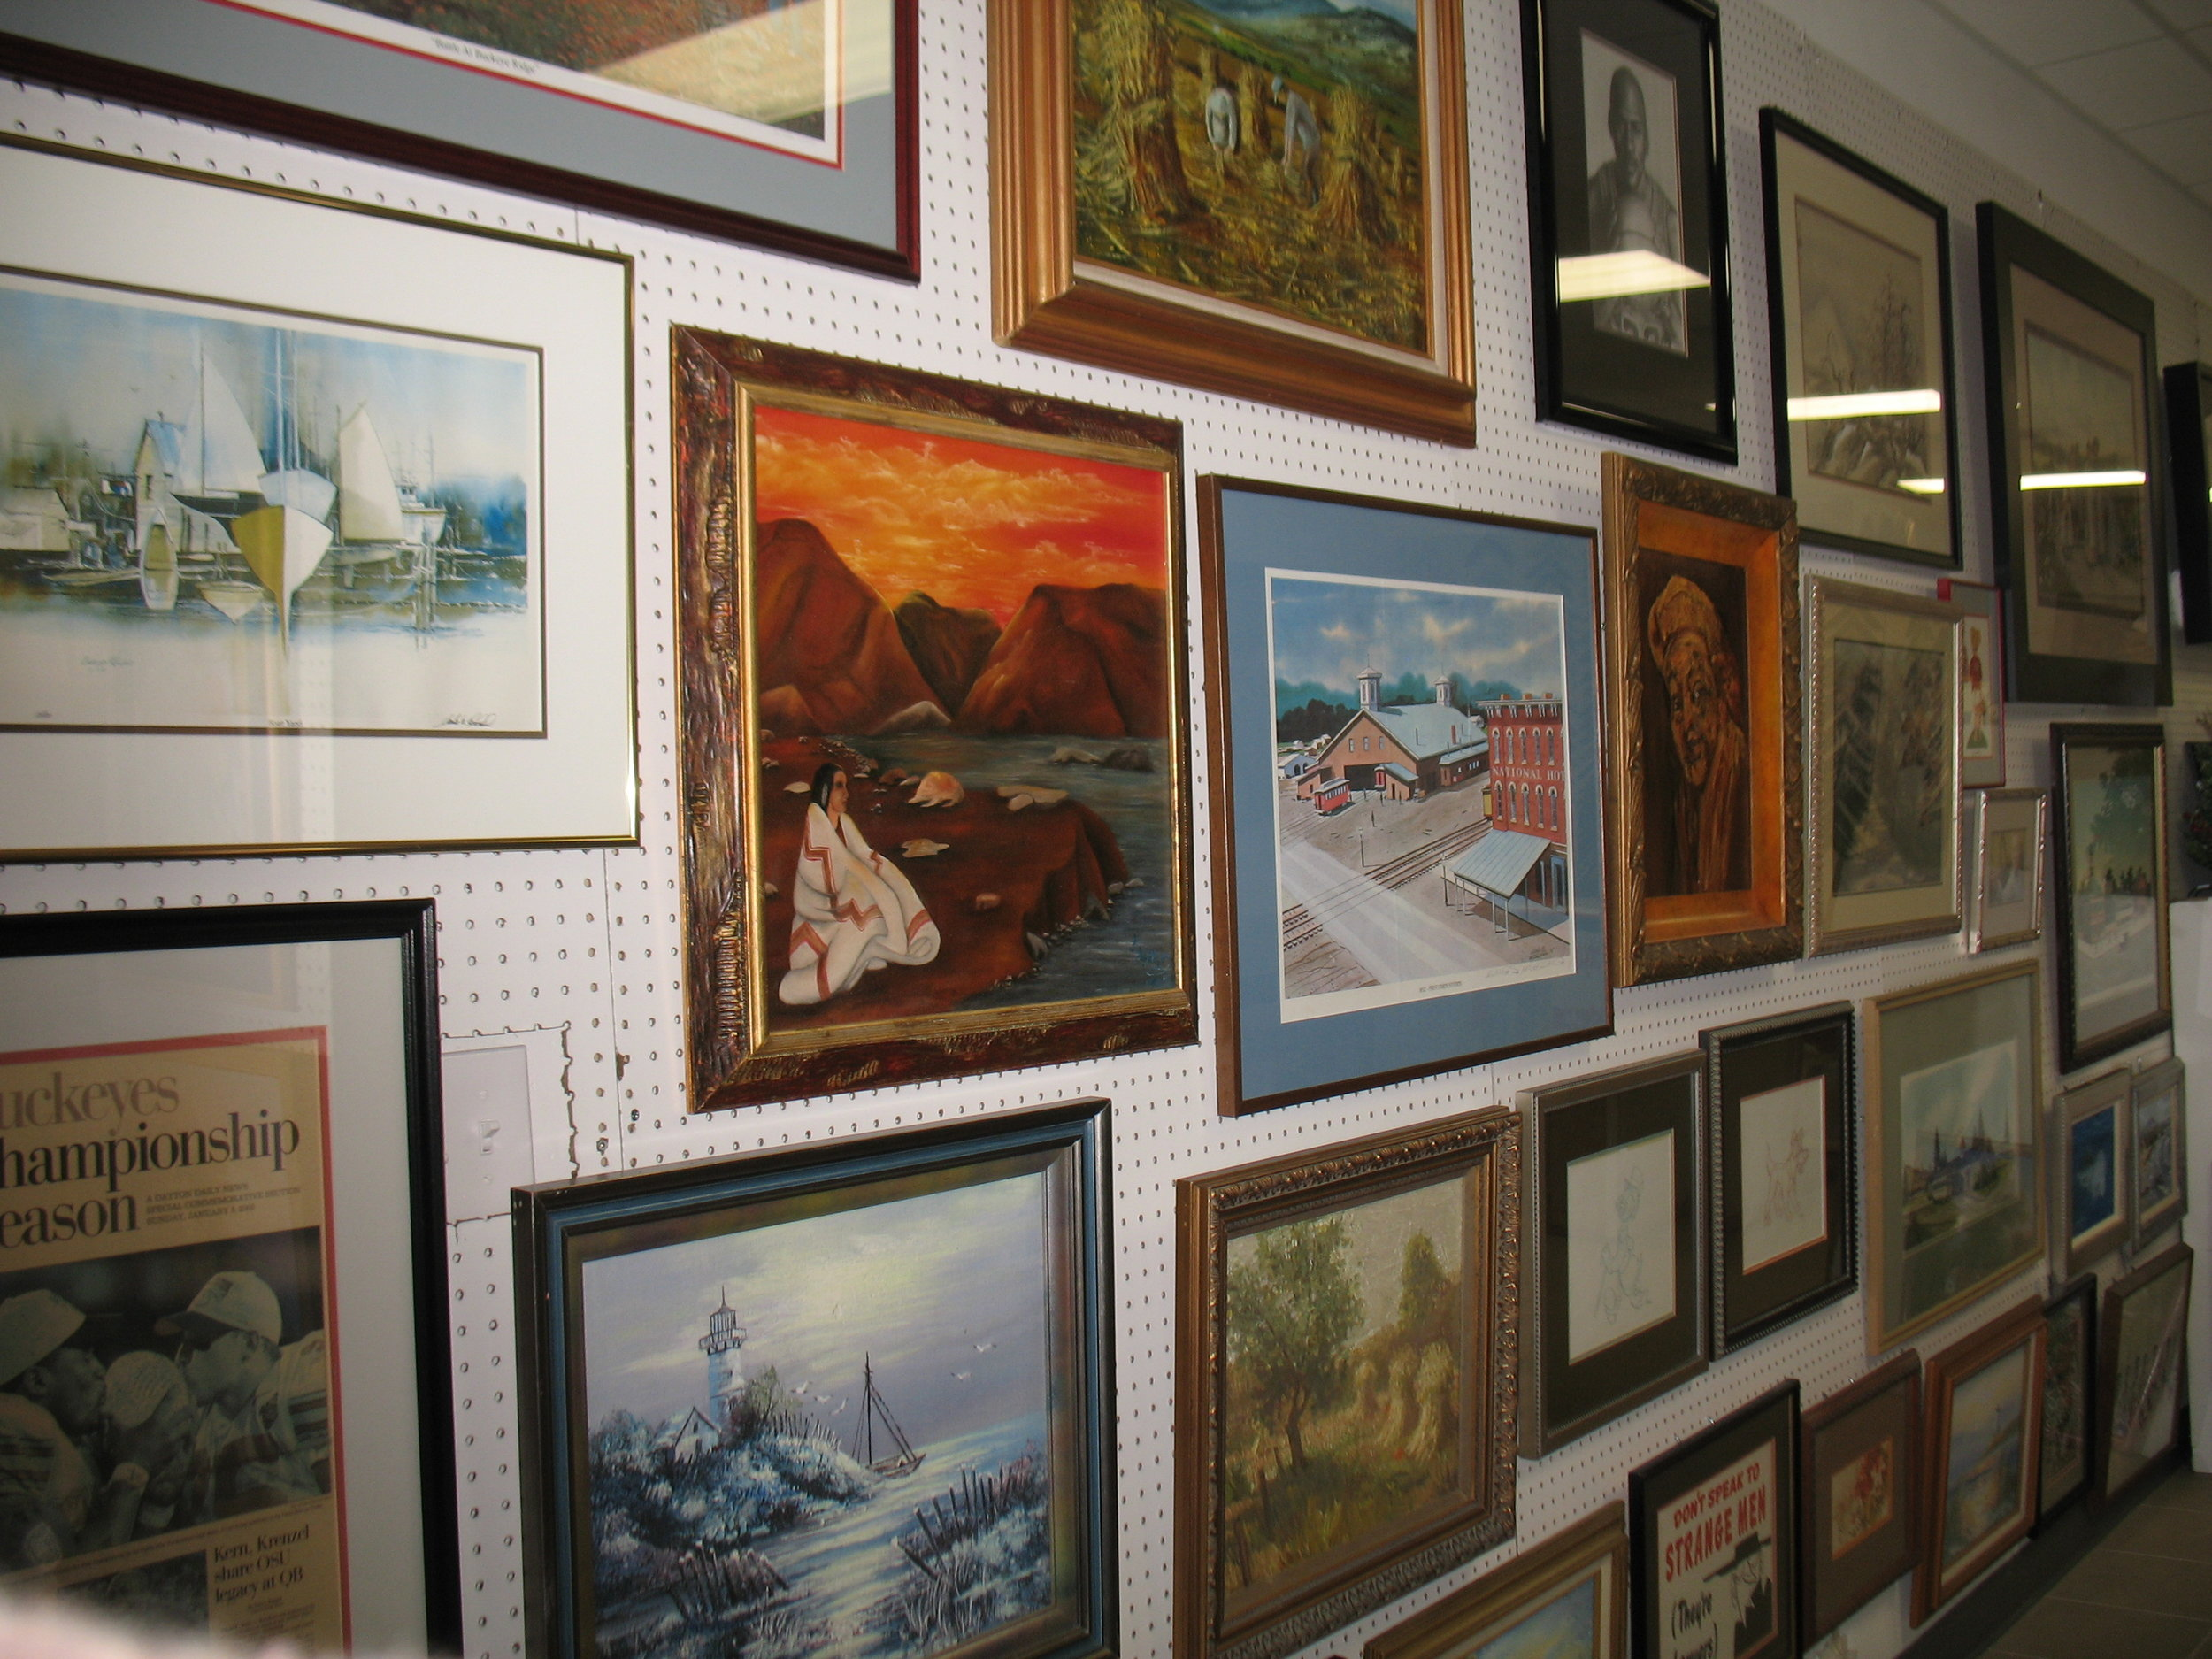 Art   - browse our eclectic selection of  original artLocal artVintage artMemorabilia